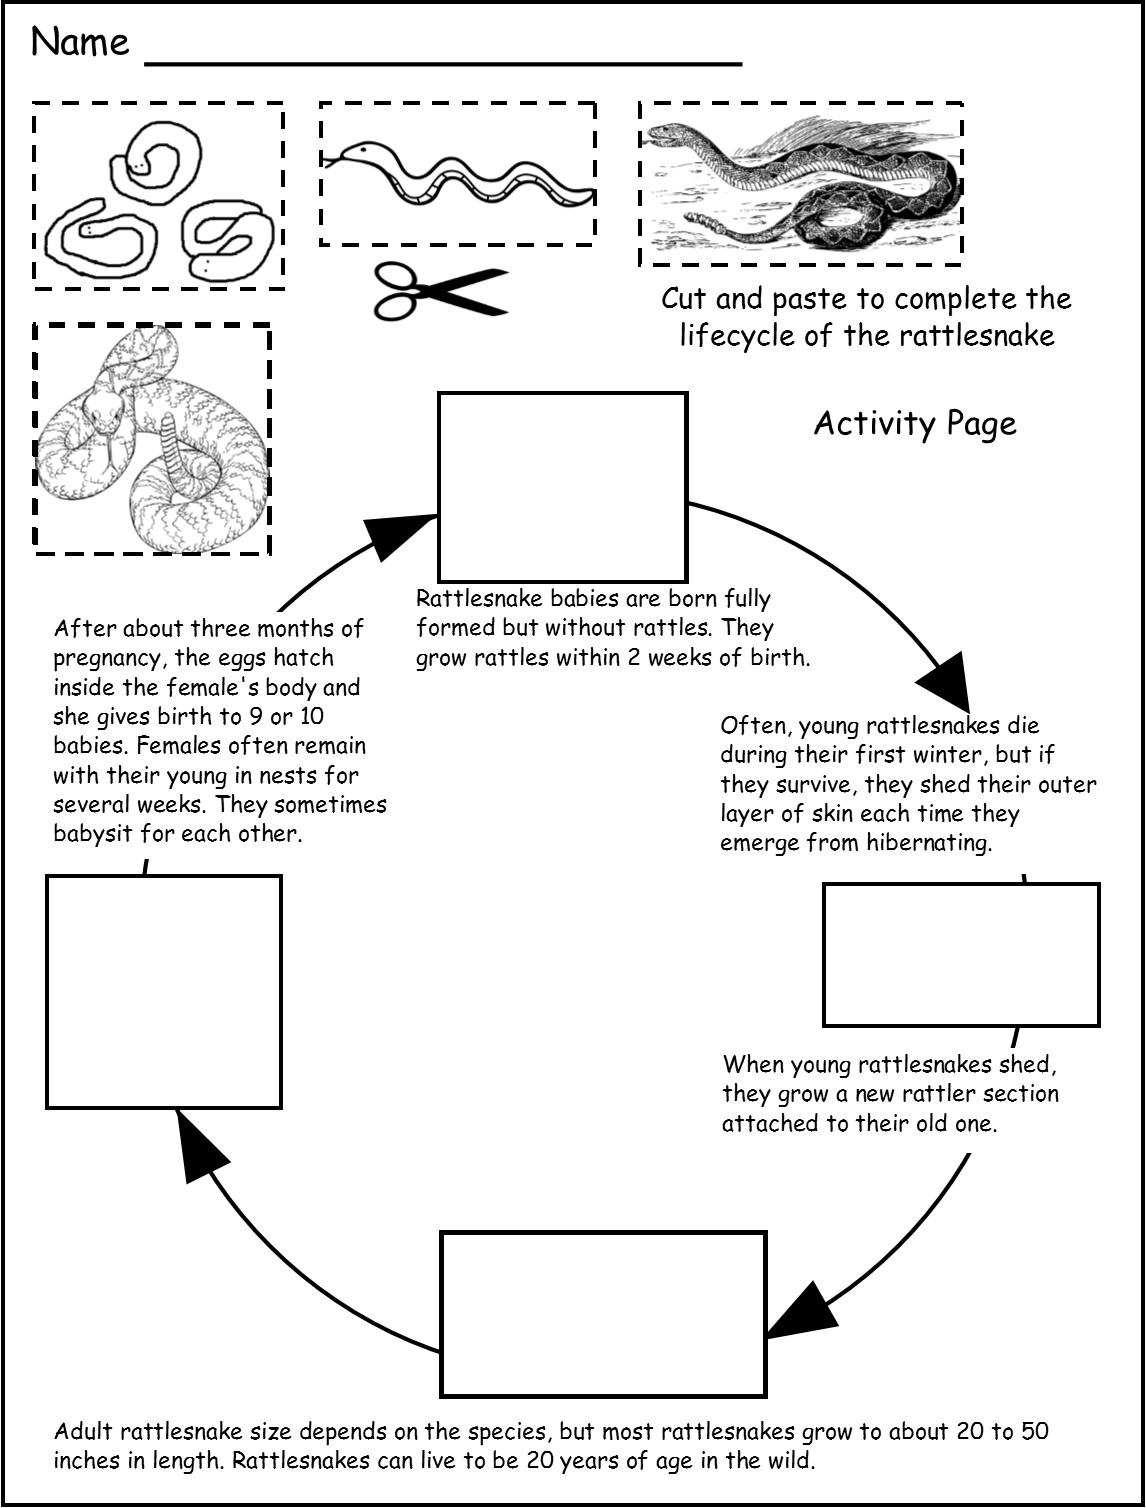 lizard life cycle diagram western plow solenoid wiring rattlesnake s the pictures to pin on pinterest